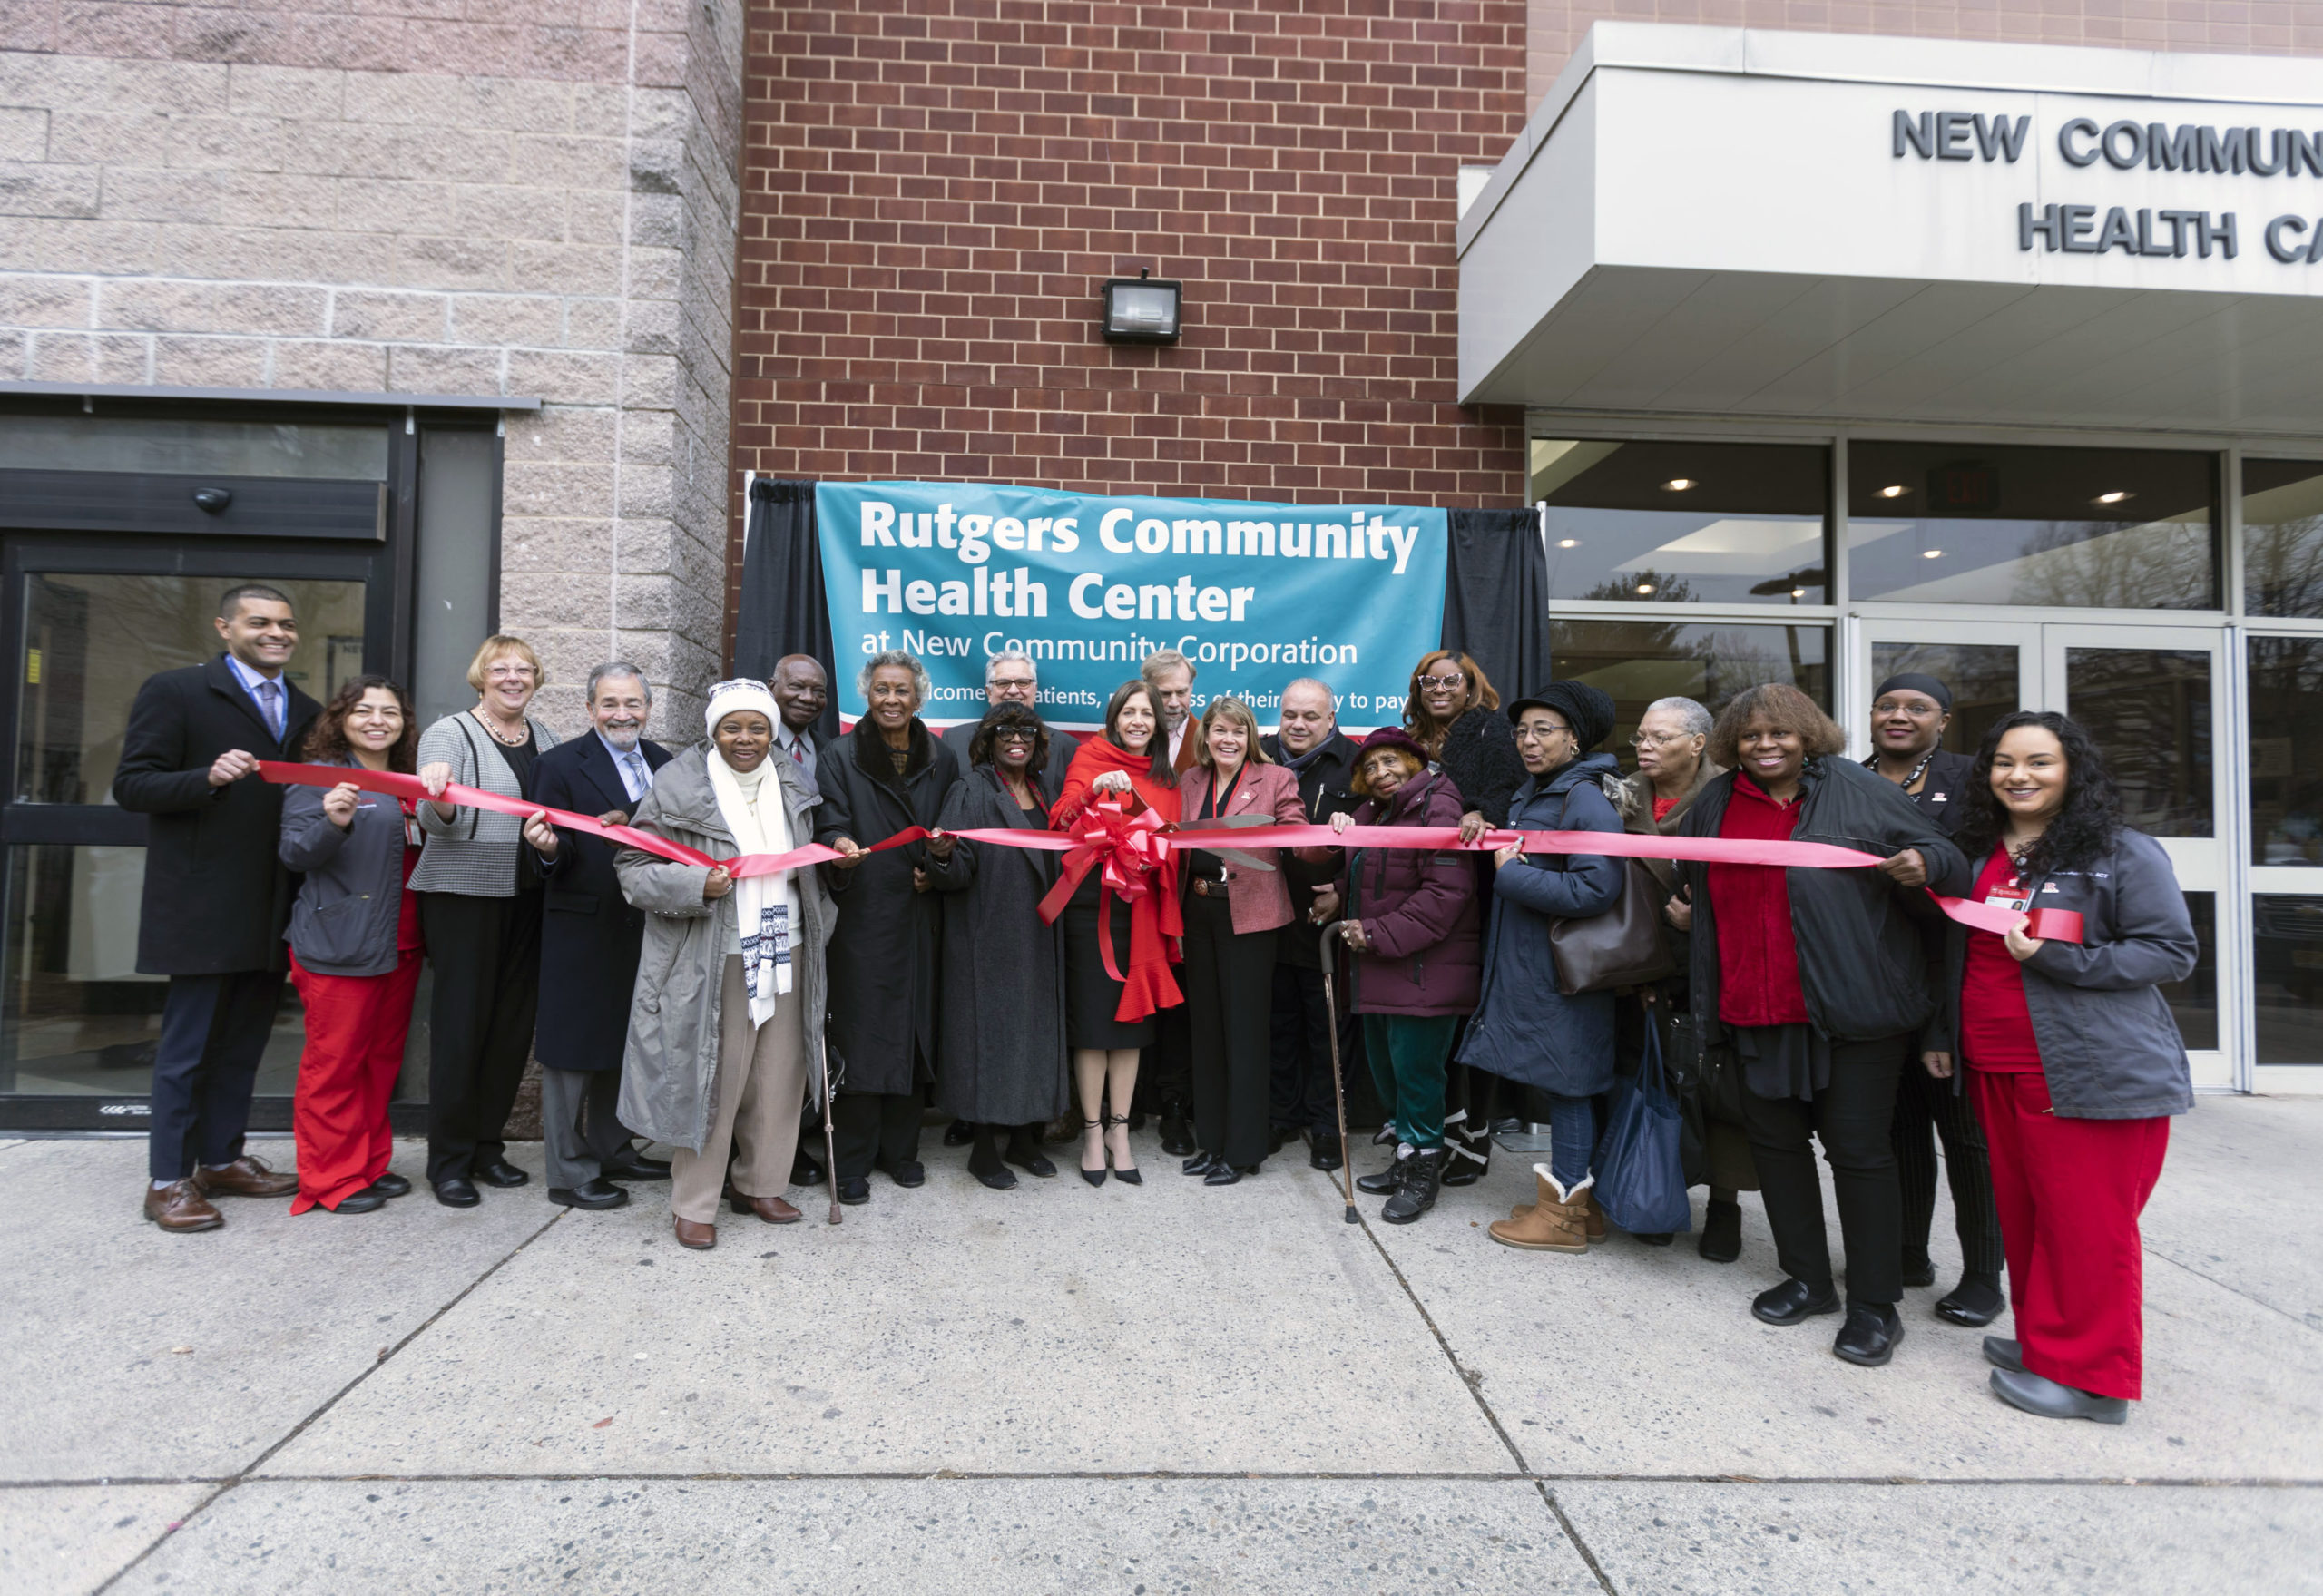 Rutgers Community Health Center Celebrates New Location and NCC Partnership